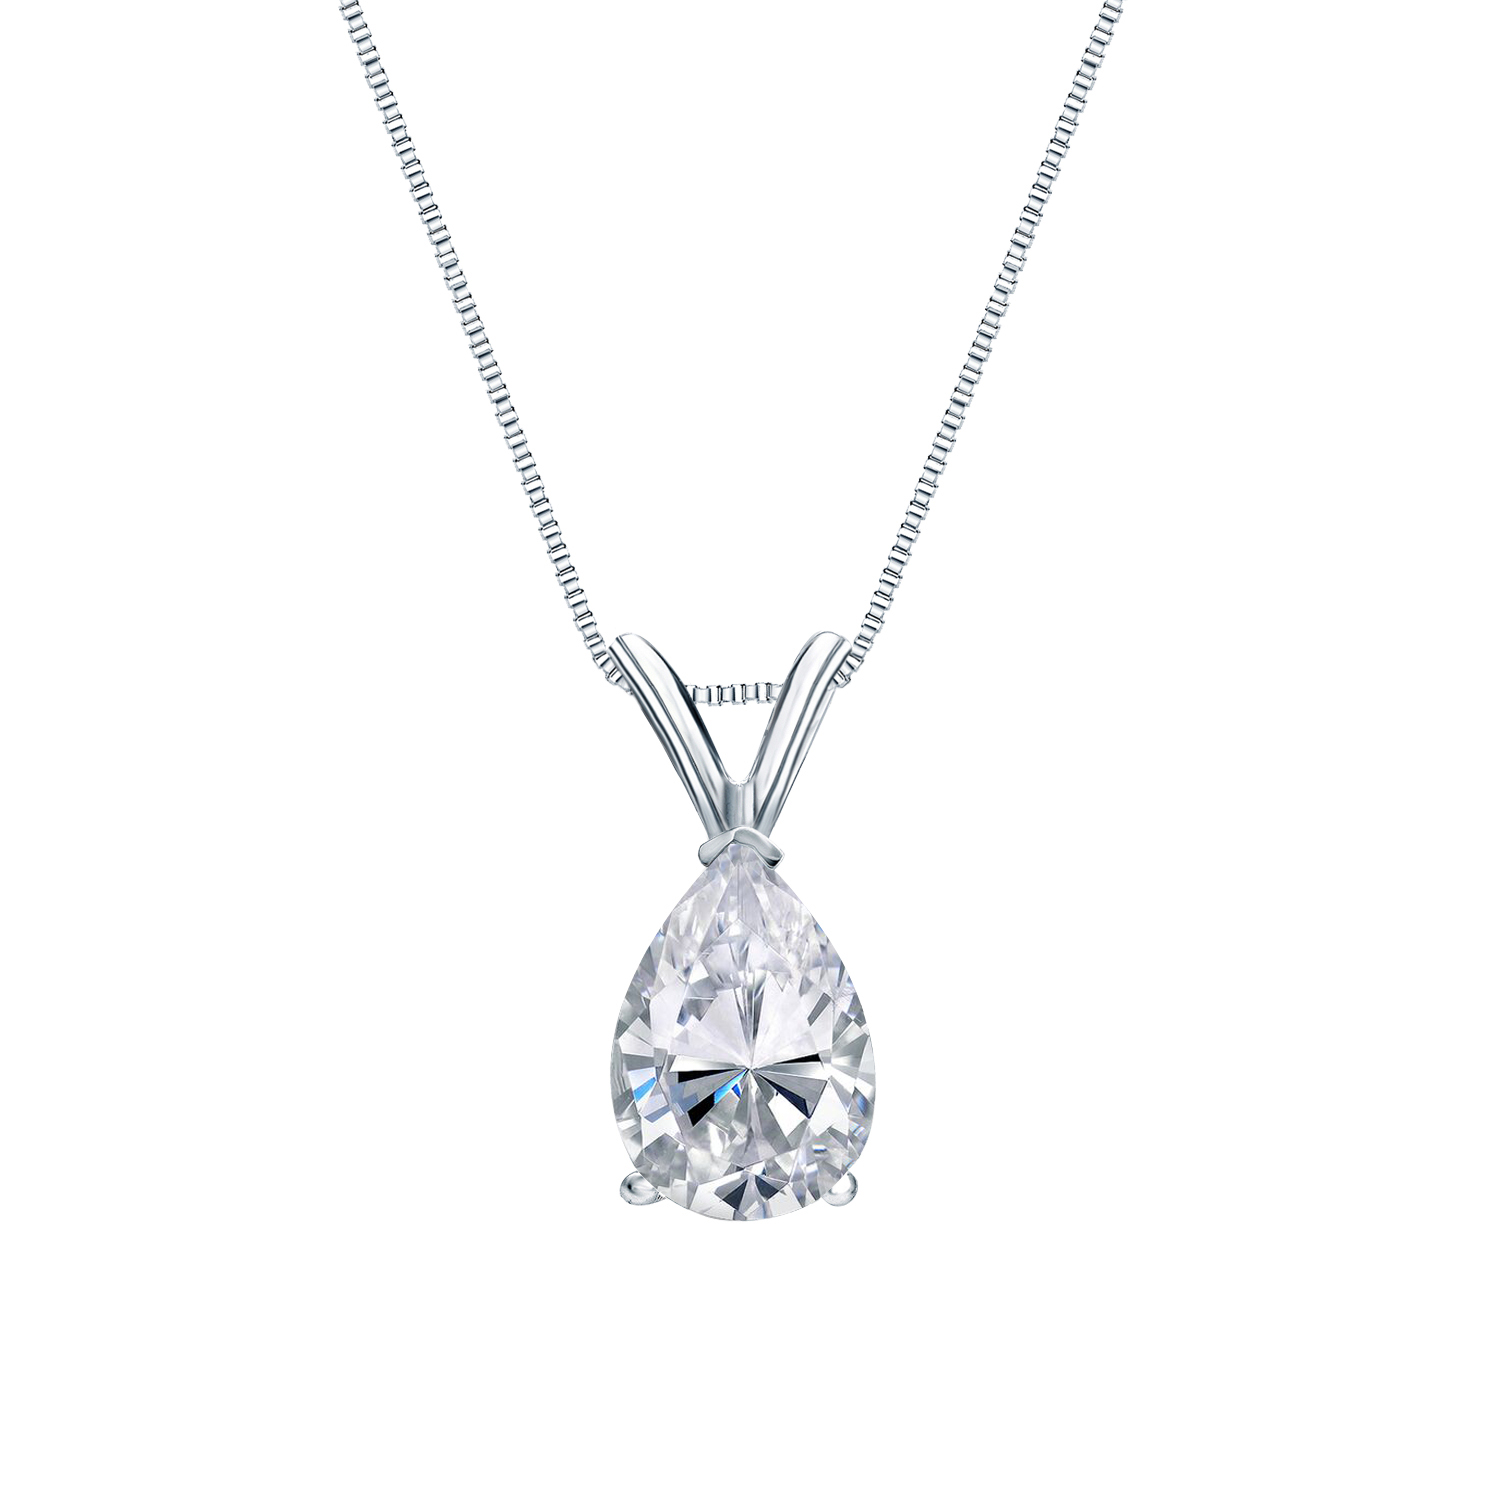 V-End Prong Diamond Solitaire Pendant in 14k White Gold